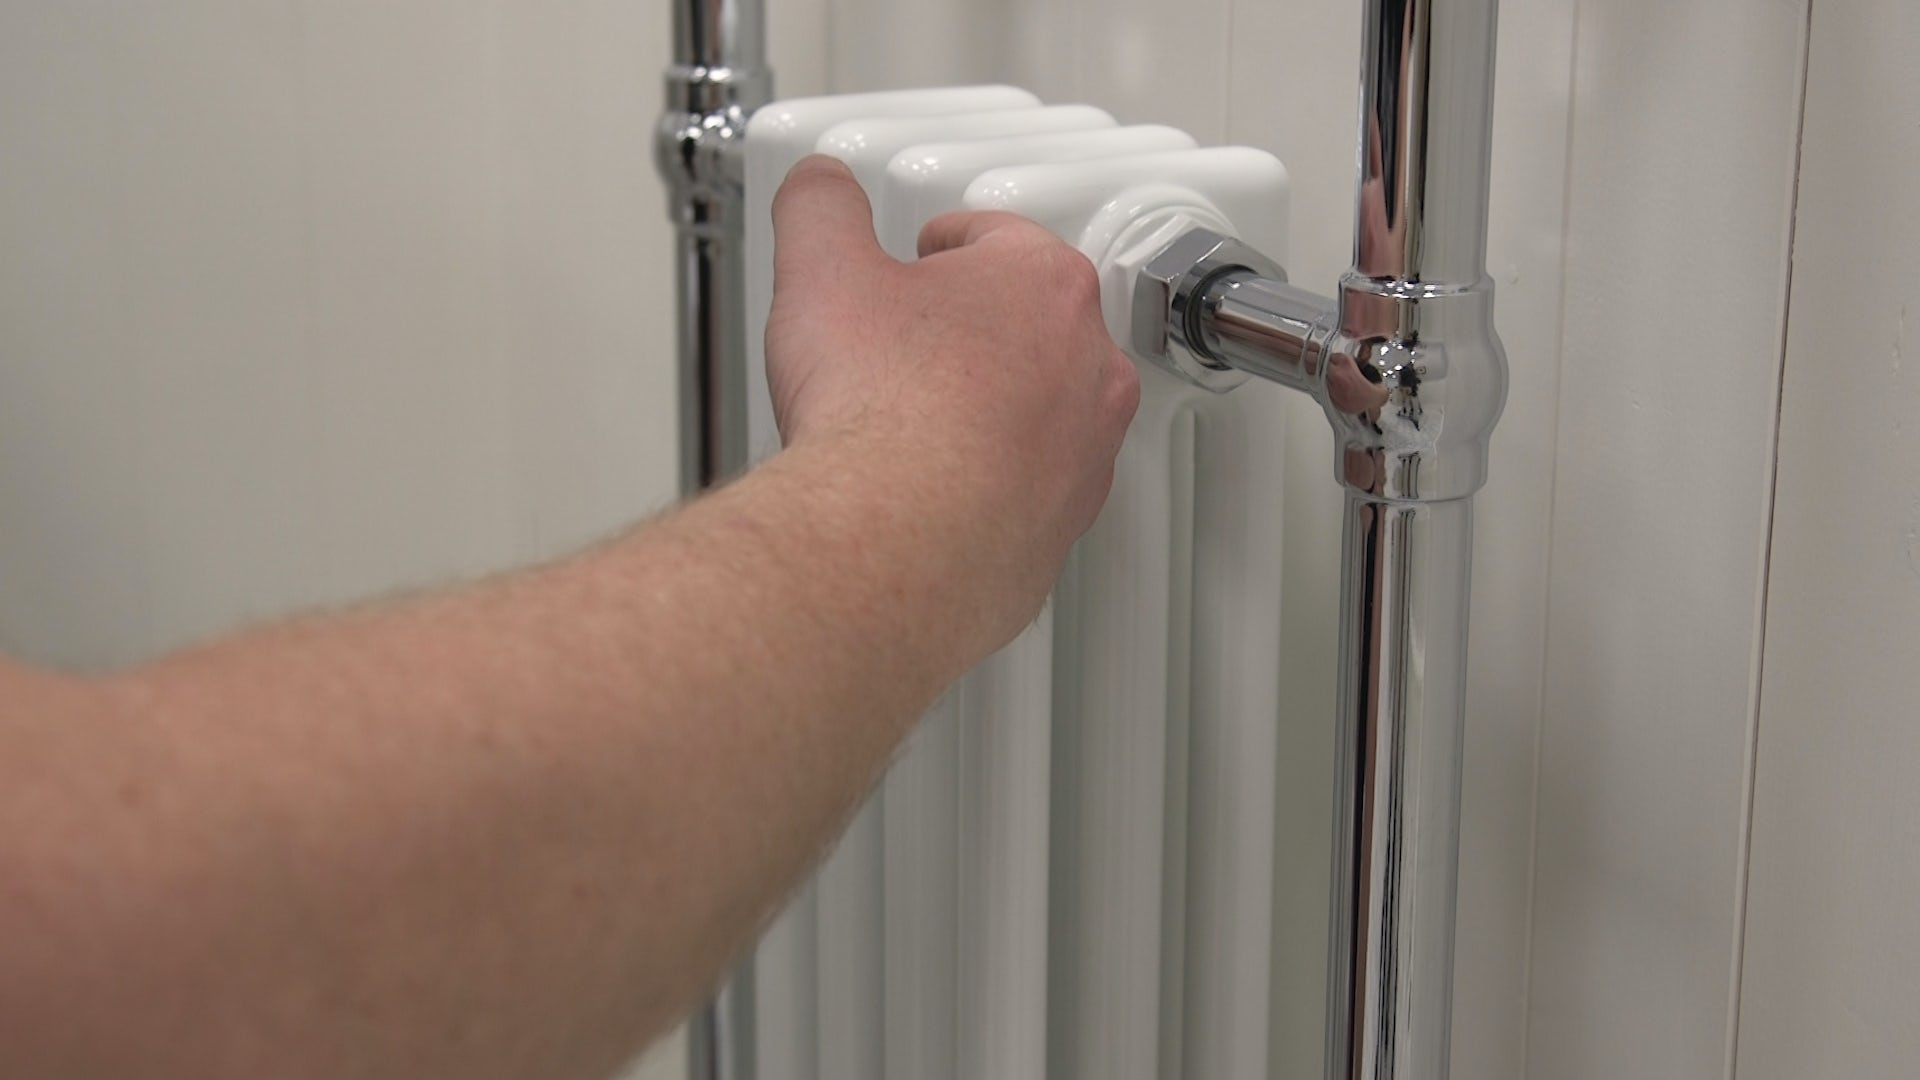 Check radiators or heated towel radiator for cold spots